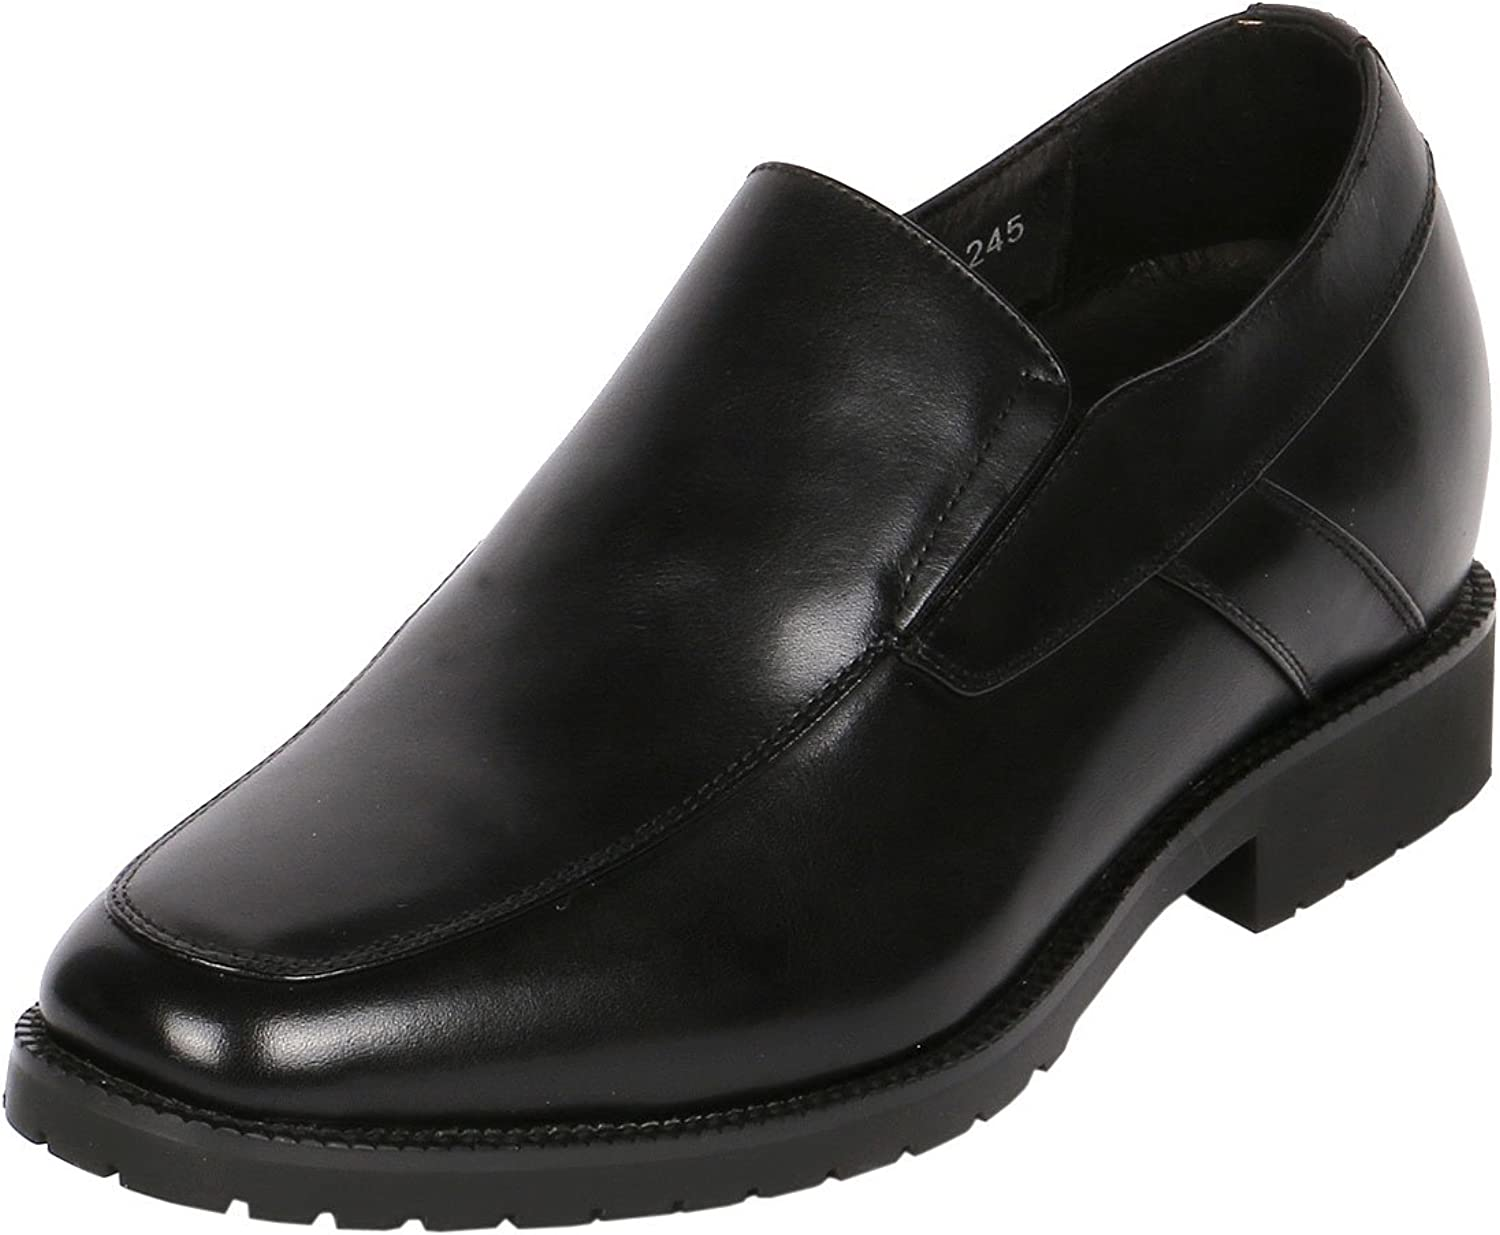 Men's Jota Apron Toe Slip-On shoes Increasing Hight 3  Taller, CYD84